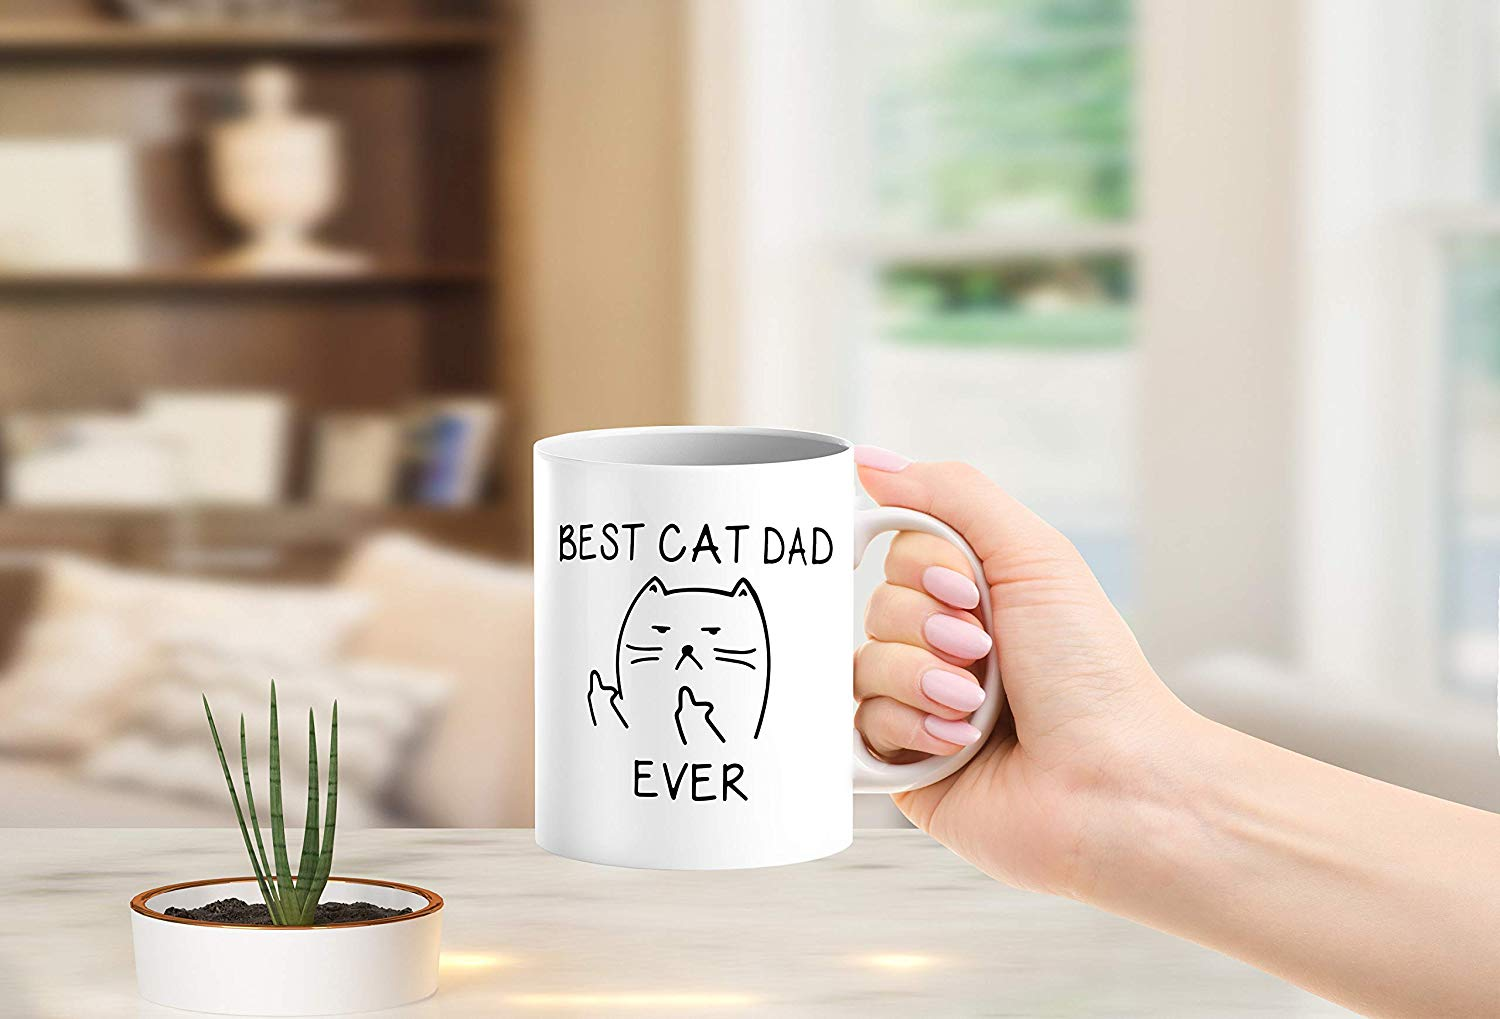 Best Cat Dad EverFunny Cat Lover Gifts Funny Middle Finger Coffee MugUnique Birthday Gift For Dad B079FZ3DHS 5